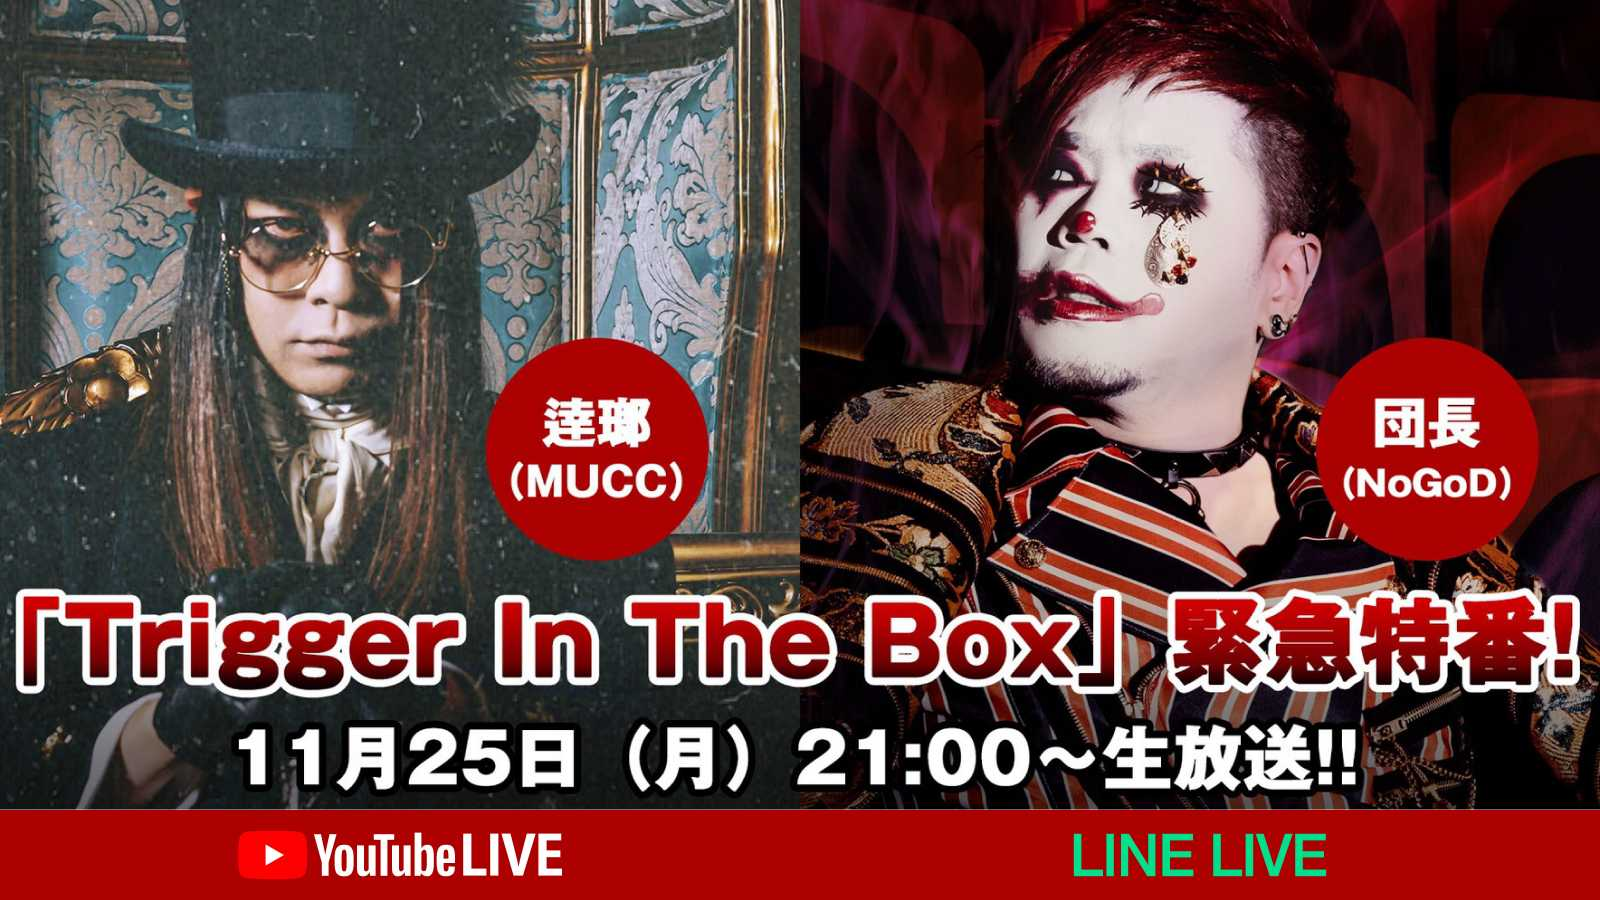 """Trigger In The Box"" Special Program to Air on YouTube Live and LINE LIVE © Trigger In The Box. All rights reserved."